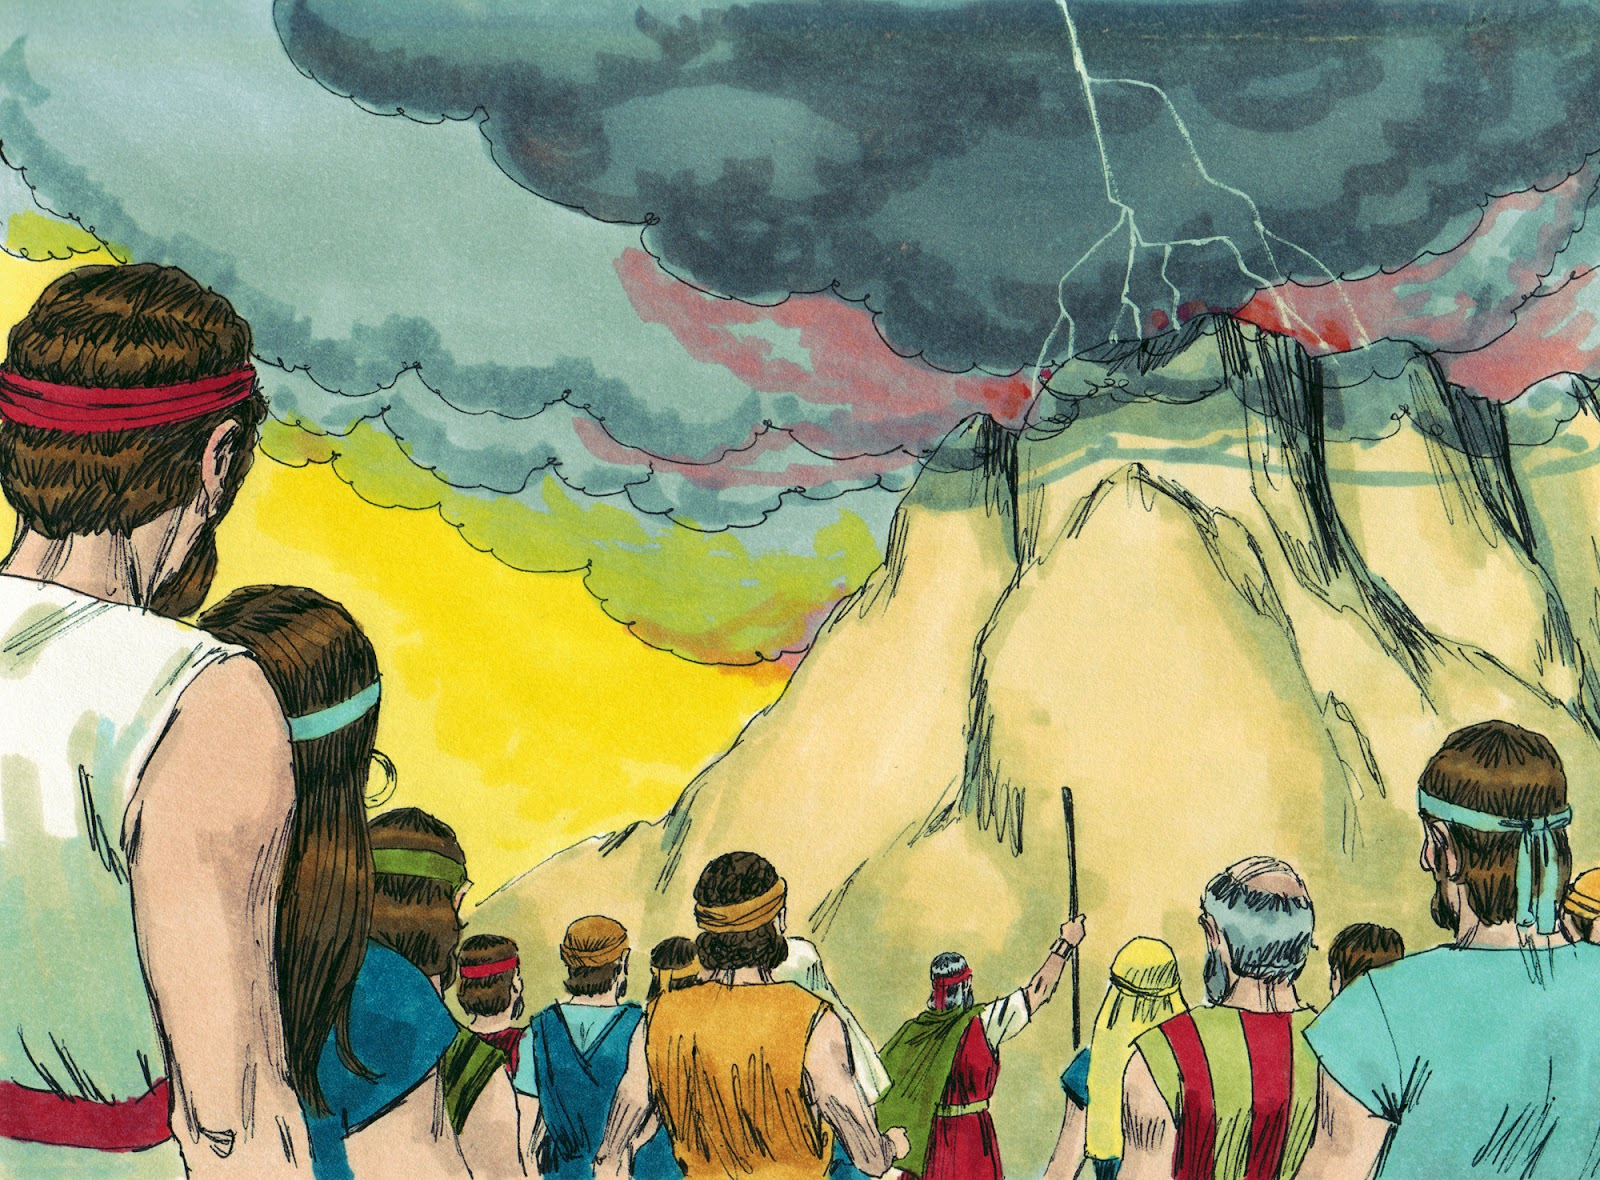 an analysis of the second commandment given to moses by god on mount sinai After moses broke the first tablets of stone that the lord gave him on mount sinai, god commanded him to cut out himself to him at the top of mount sinai—again (exodus 34:1-2) skeptics.